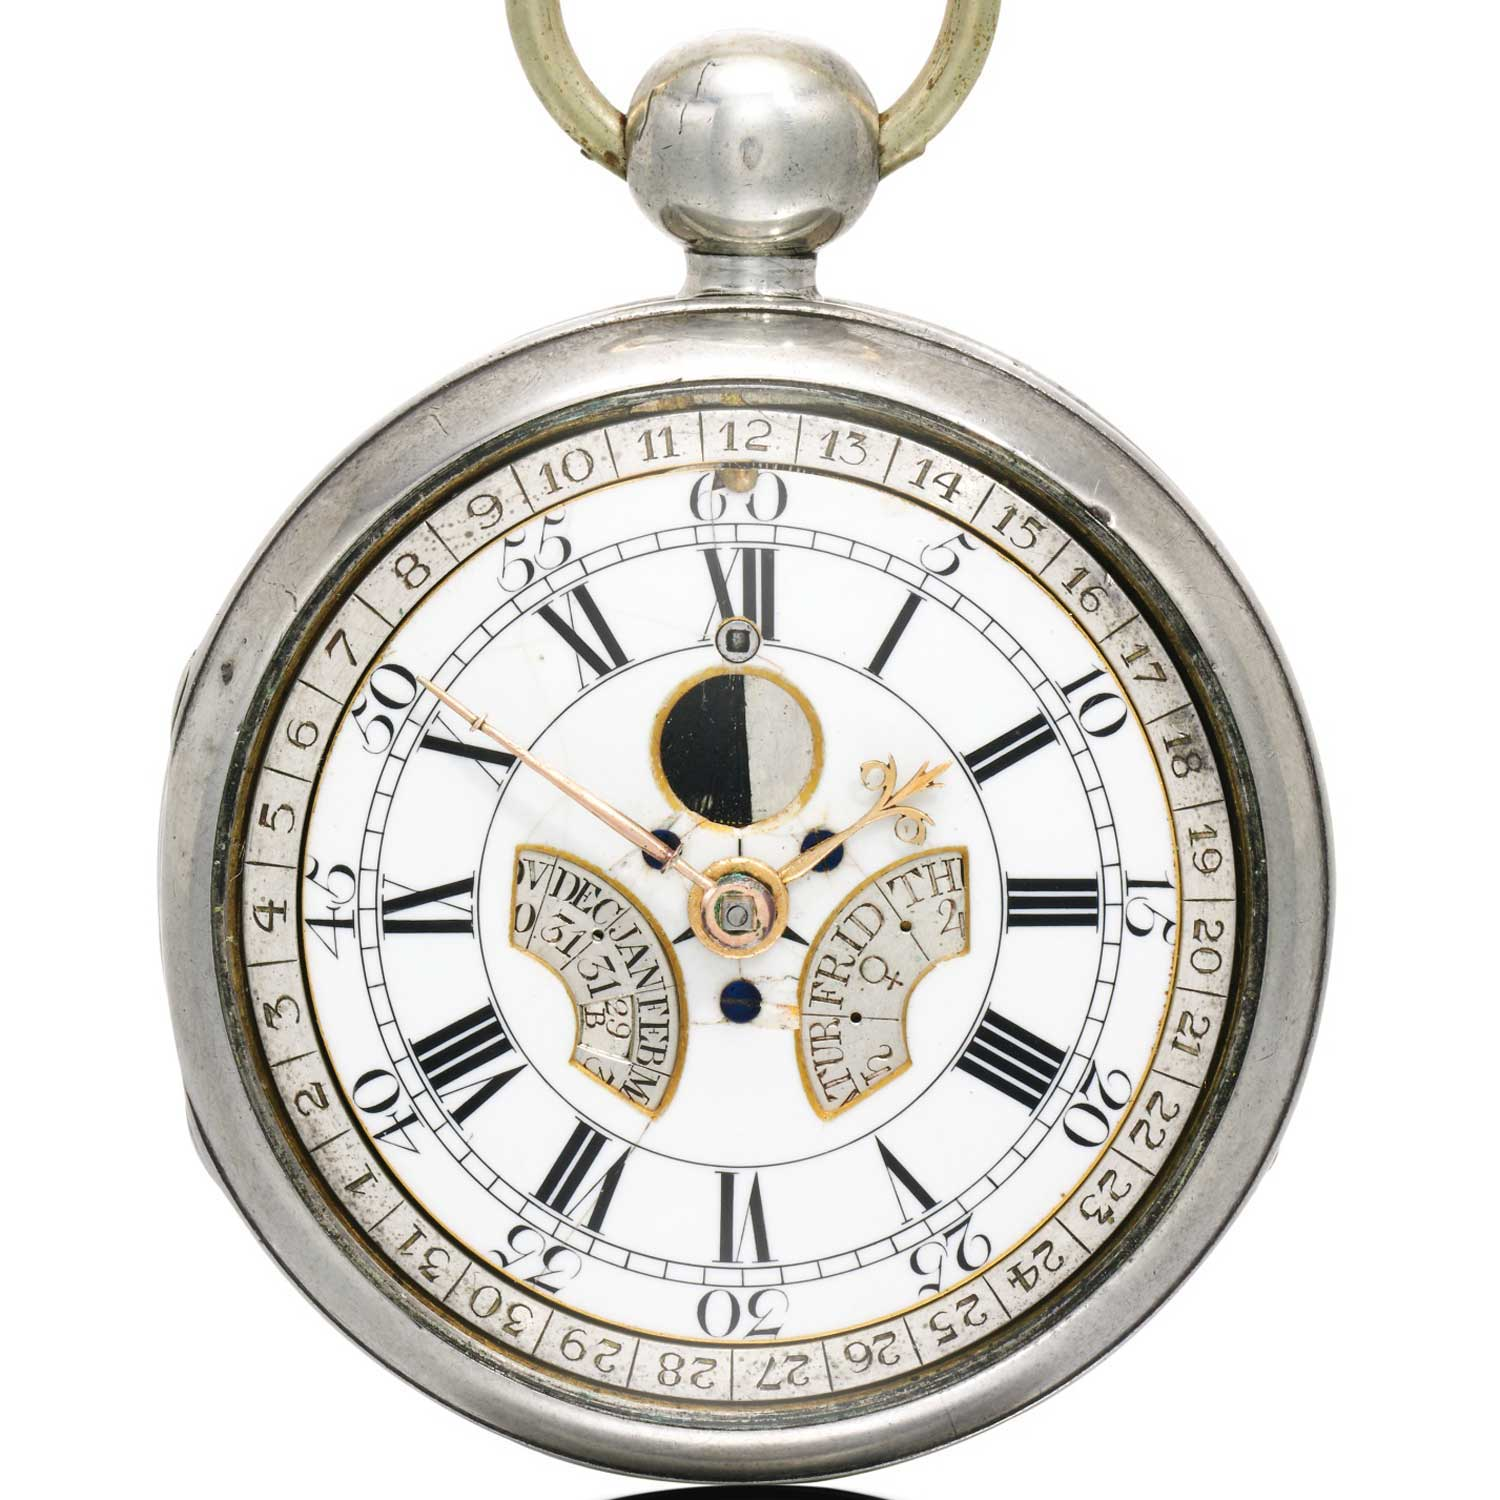 Earliest known perpetual calendar watch, created by Thomas Mudge in 1762 ( Image: Sotheby's)